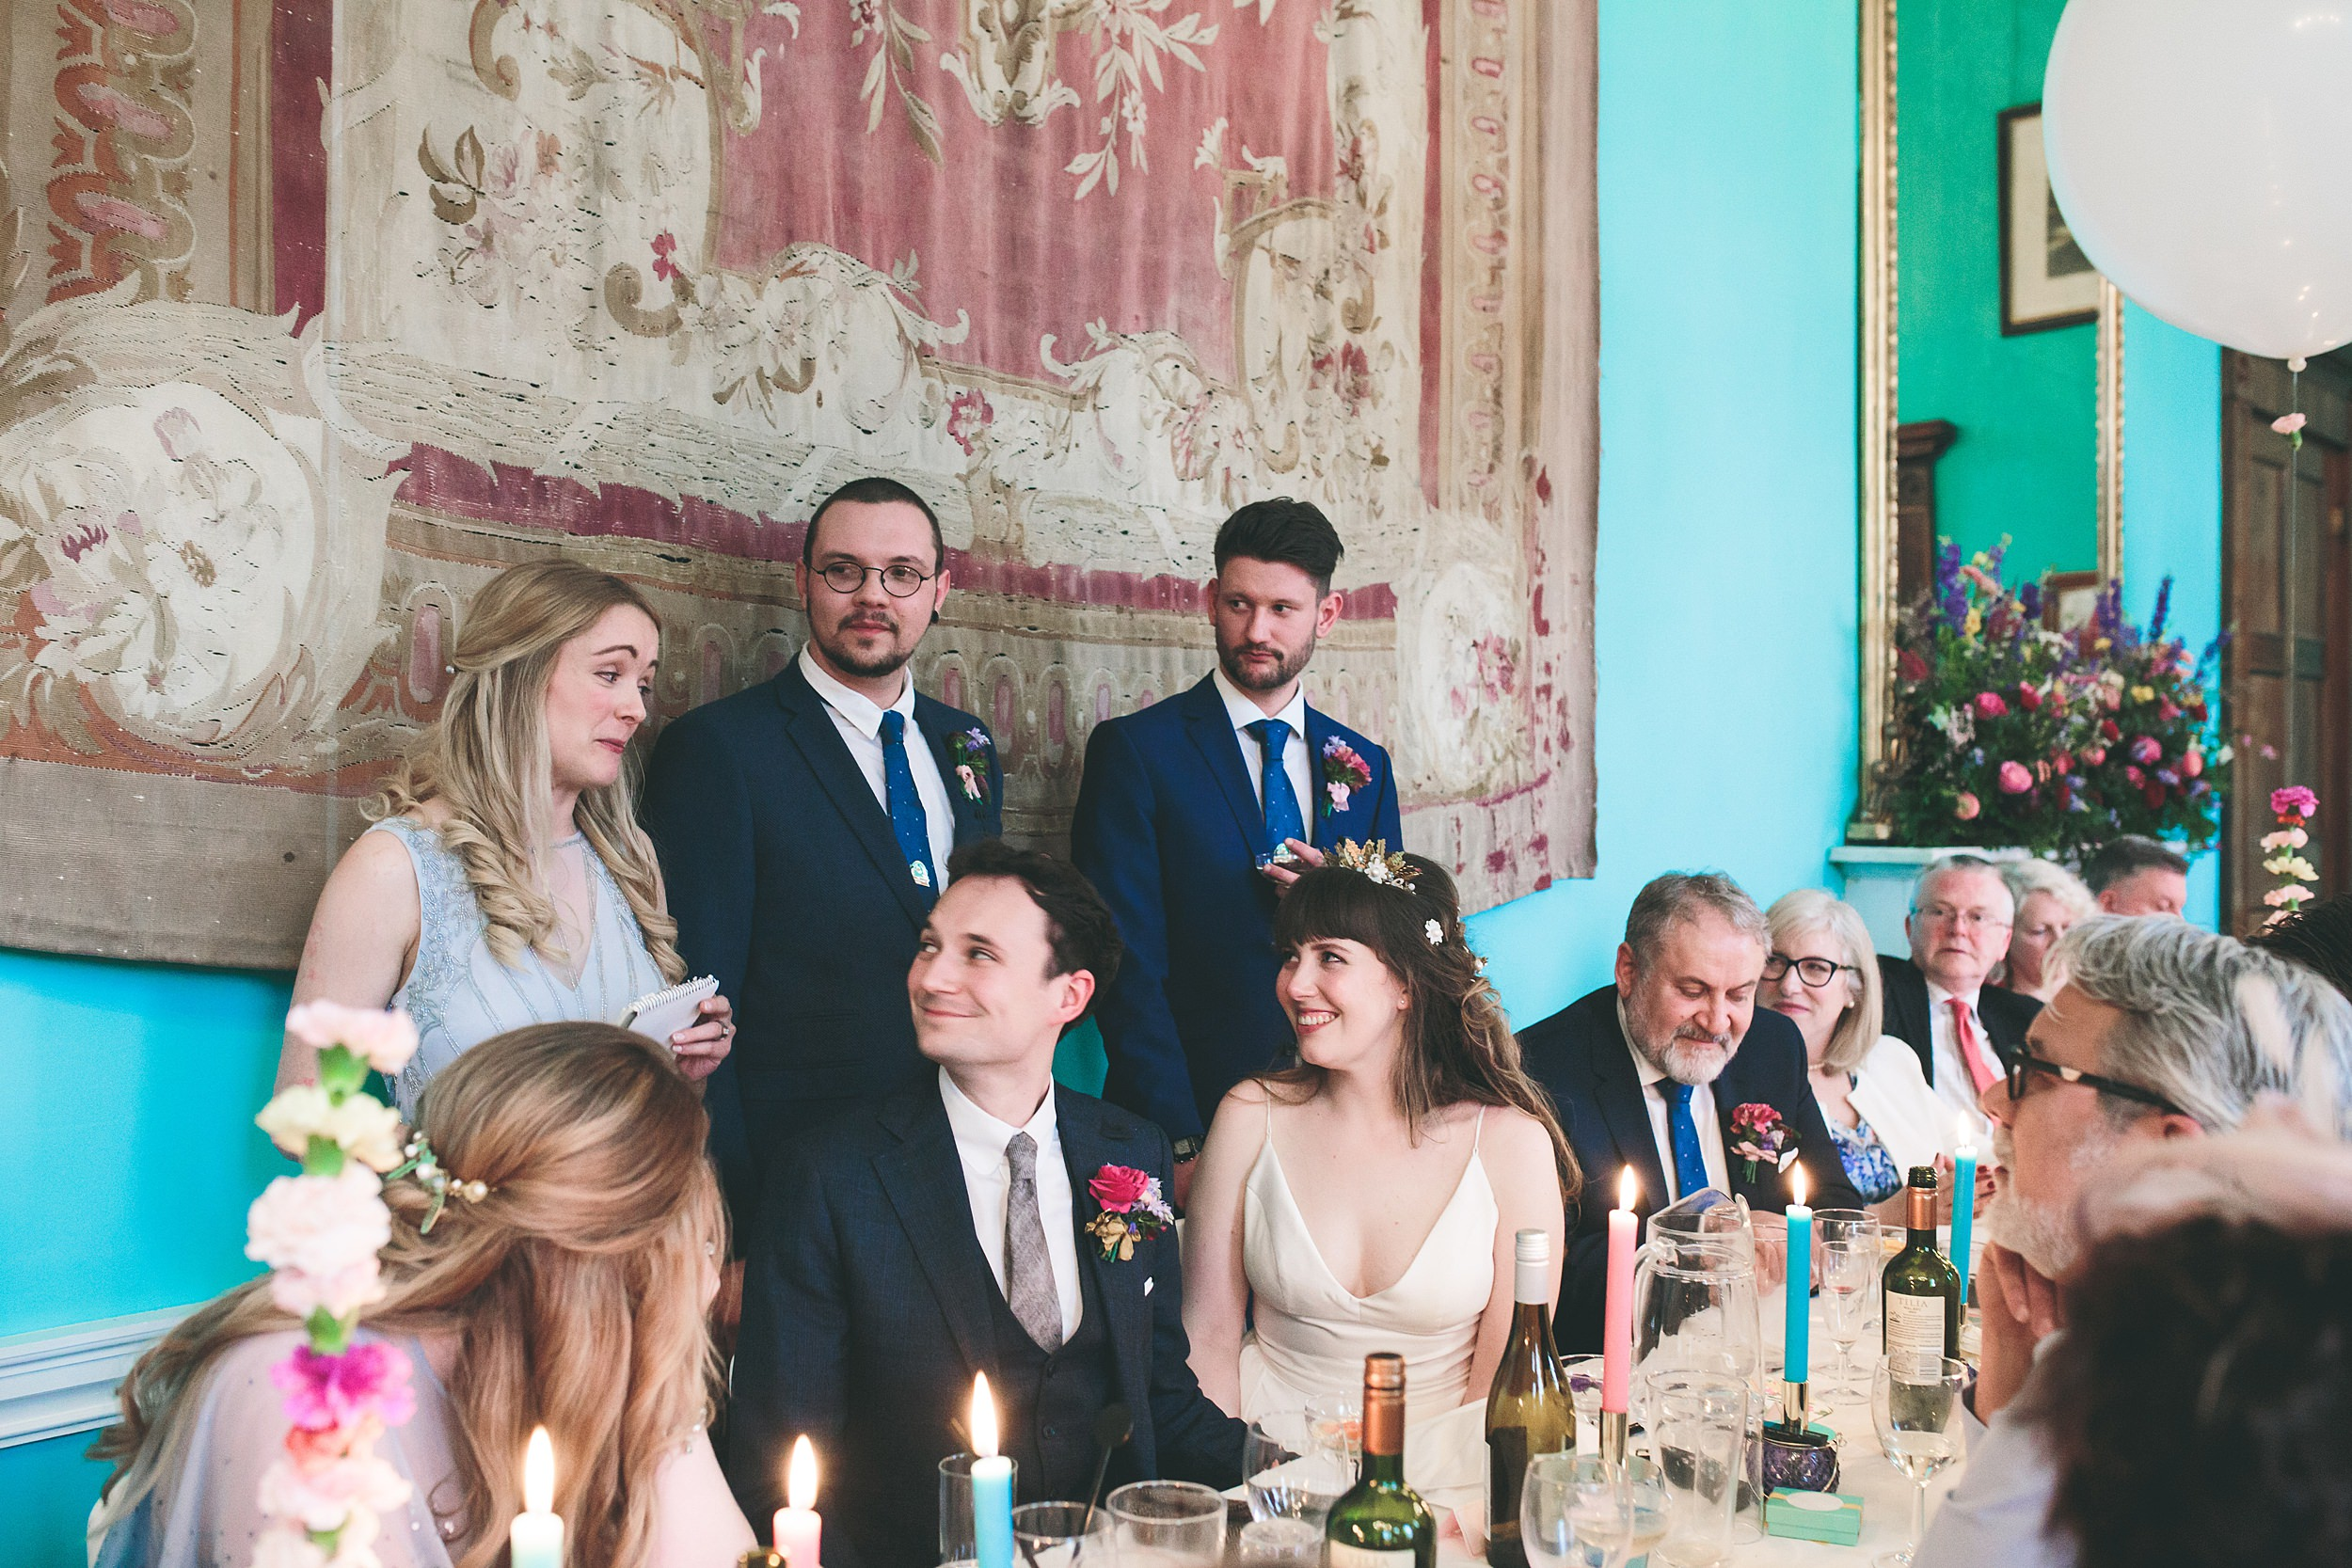 Wes Anderson Wedding Photography Cornwall Photographer Walcot Hall 00107.jpg